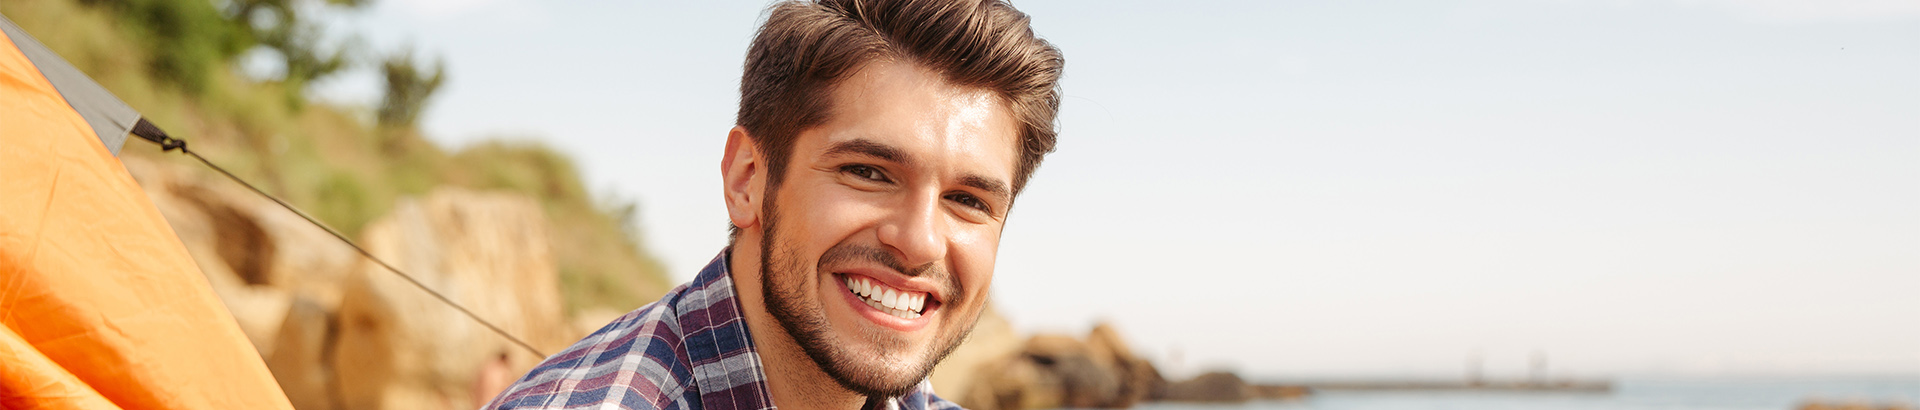 Younger man smiling